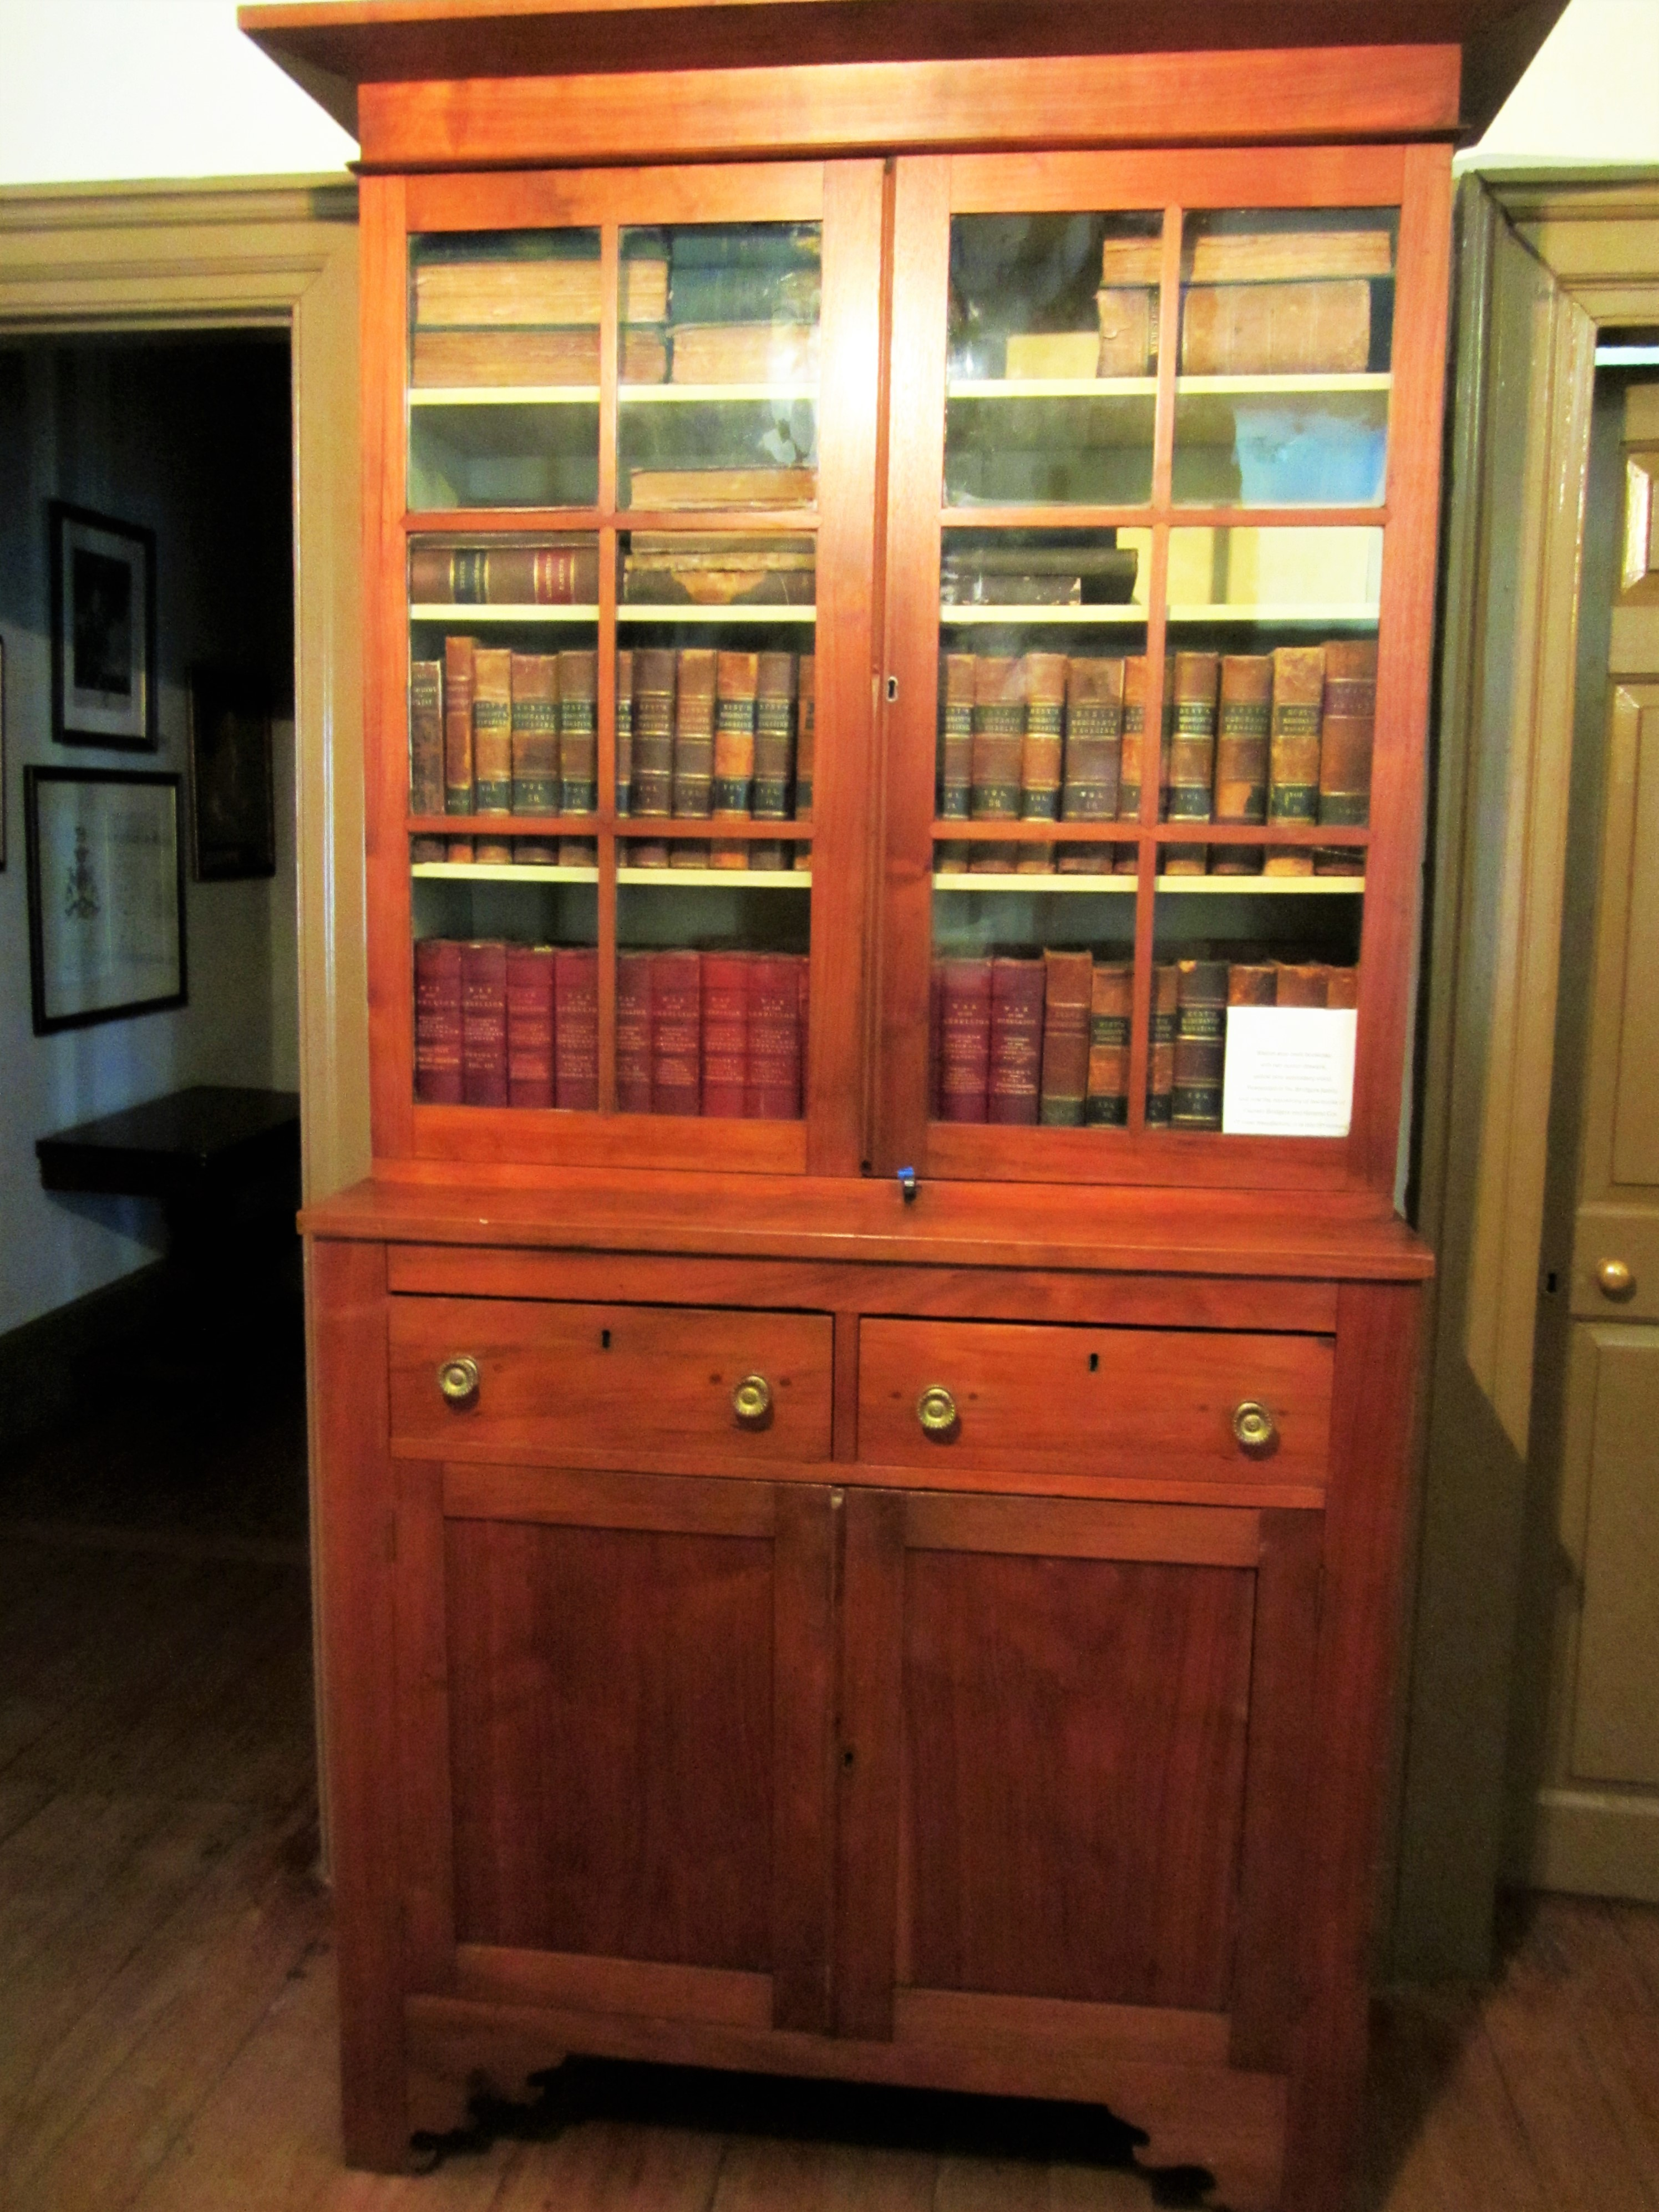 The Bridgers bookcase originally belonged to the Bridgers family & holds a collection of books belonging to the Bridgers & CSA officer William R. Cox.